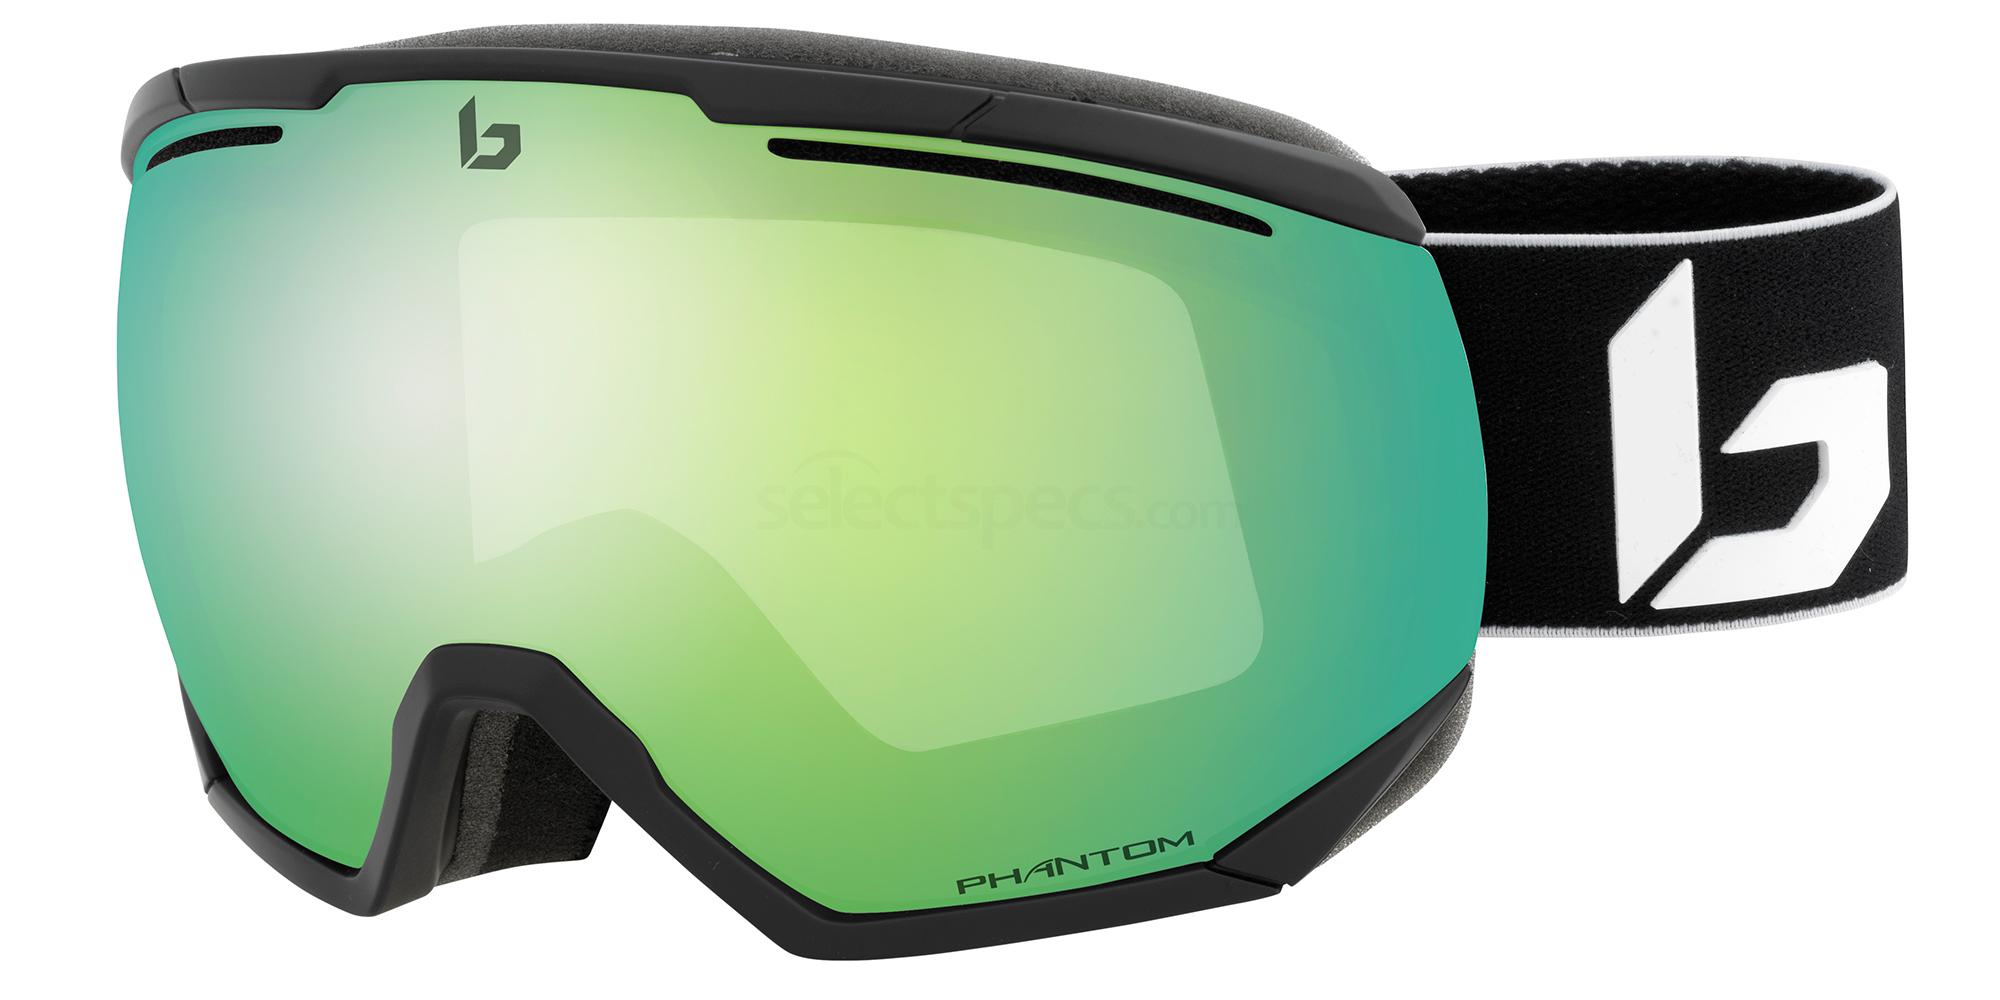 21977 NORTHSTAR Goggles, Bolle